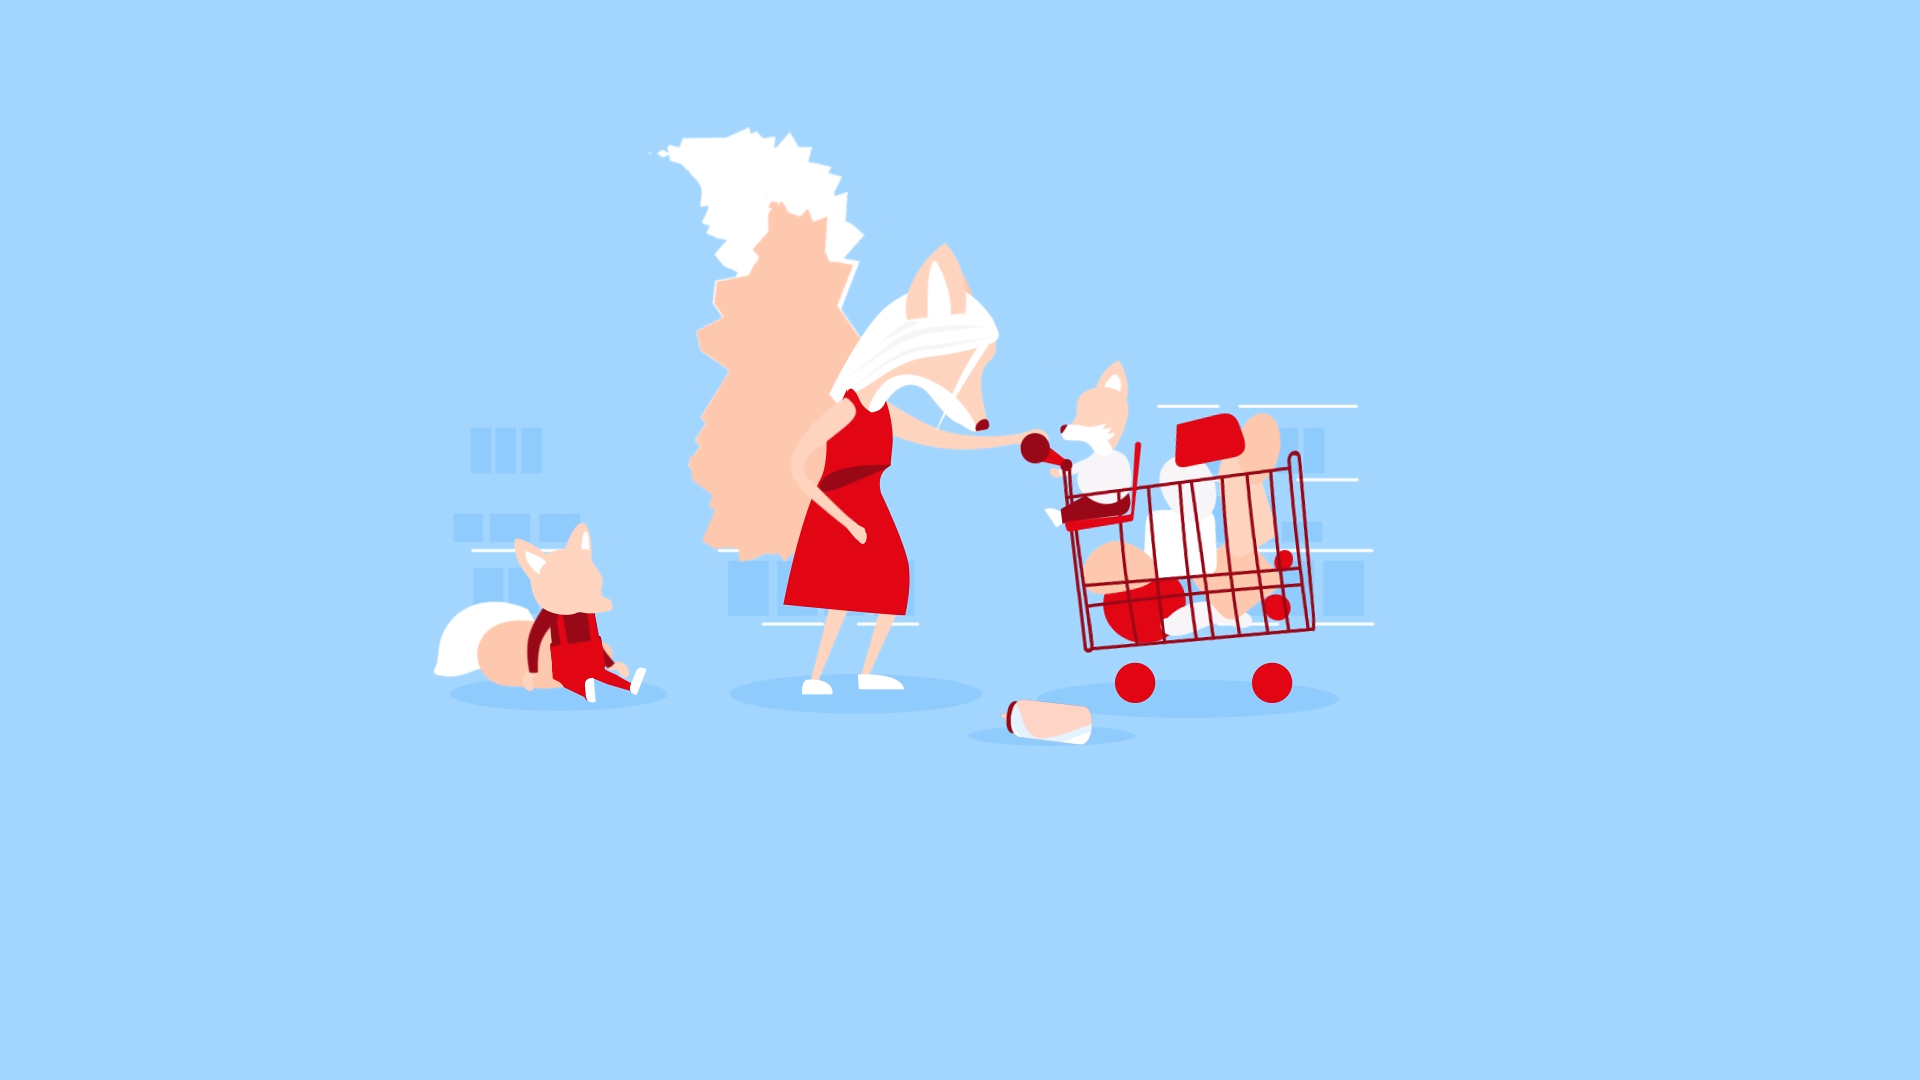 Image of The Big Issue Foundation's #EasyGiving Campaign showing mother fox shopping with children